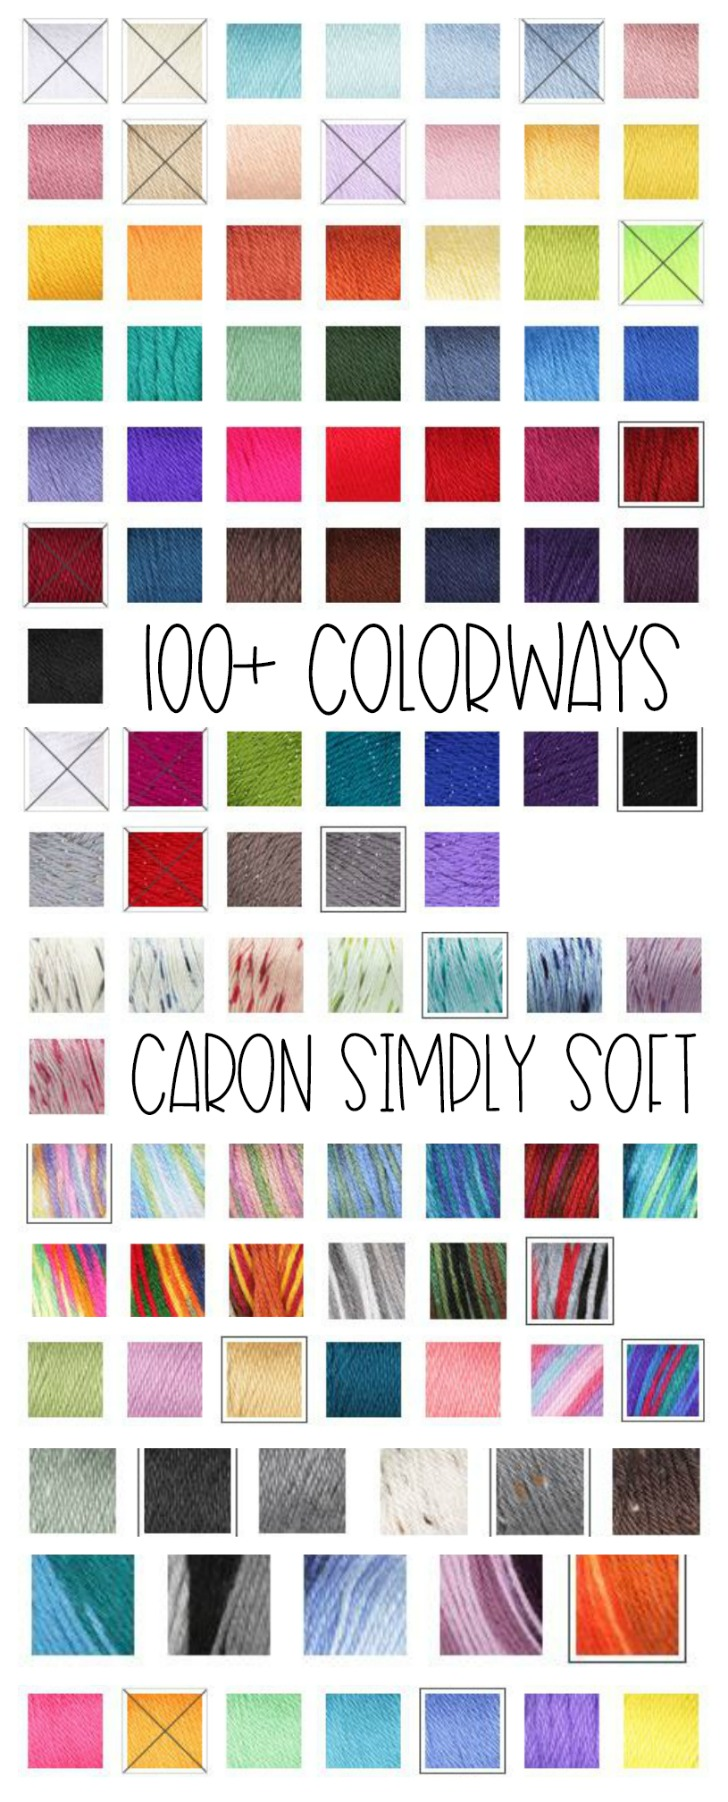 100+ Colorways of Caron Simply Soft - get them all on Yarnspirations!